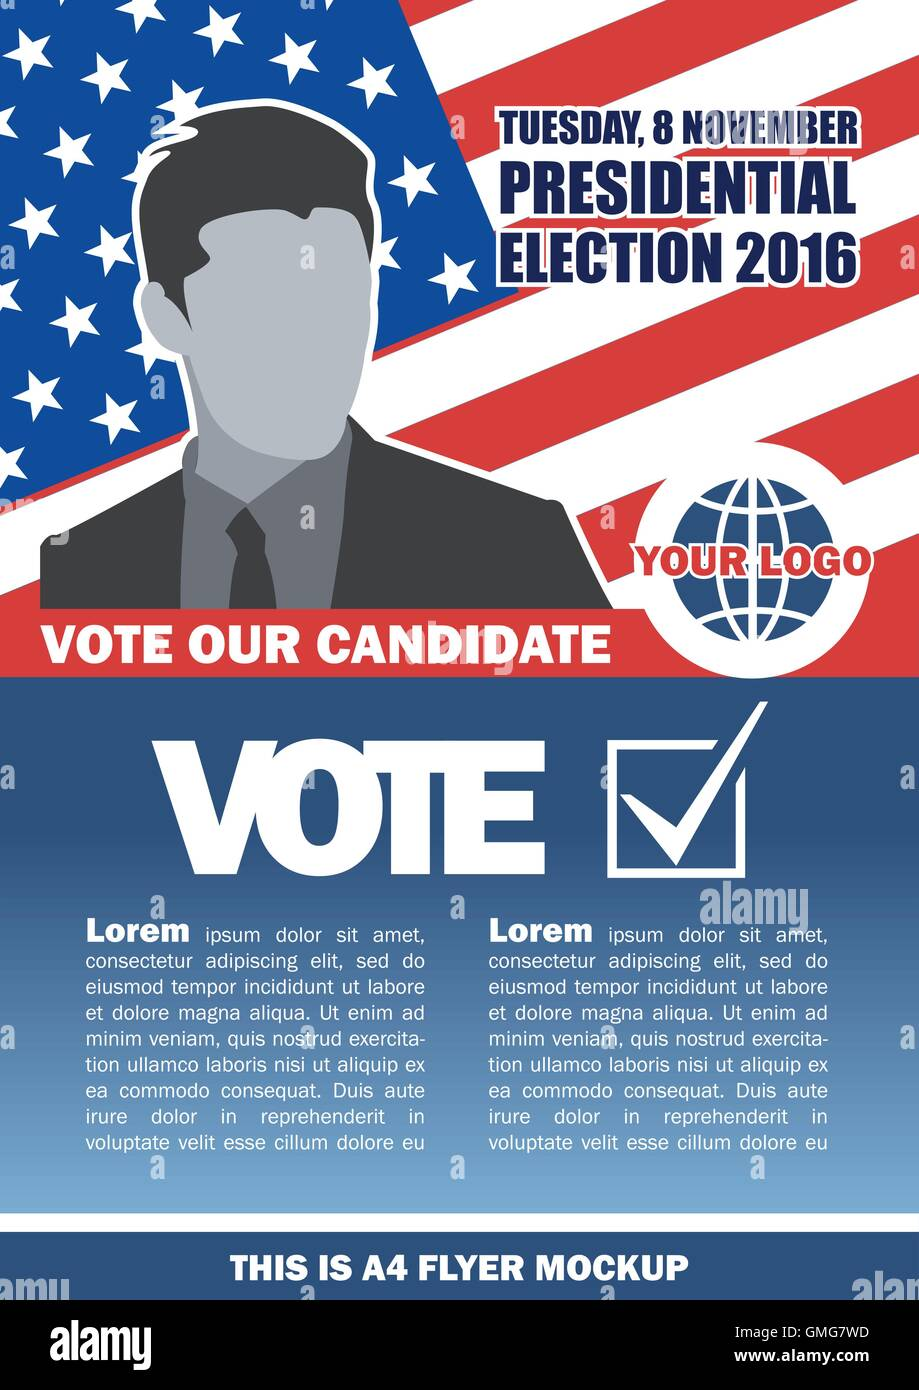 Usa 2016 election a4 flyer mockup with country map, vote checkbox and male candidate. Digital vector image - Stock Image